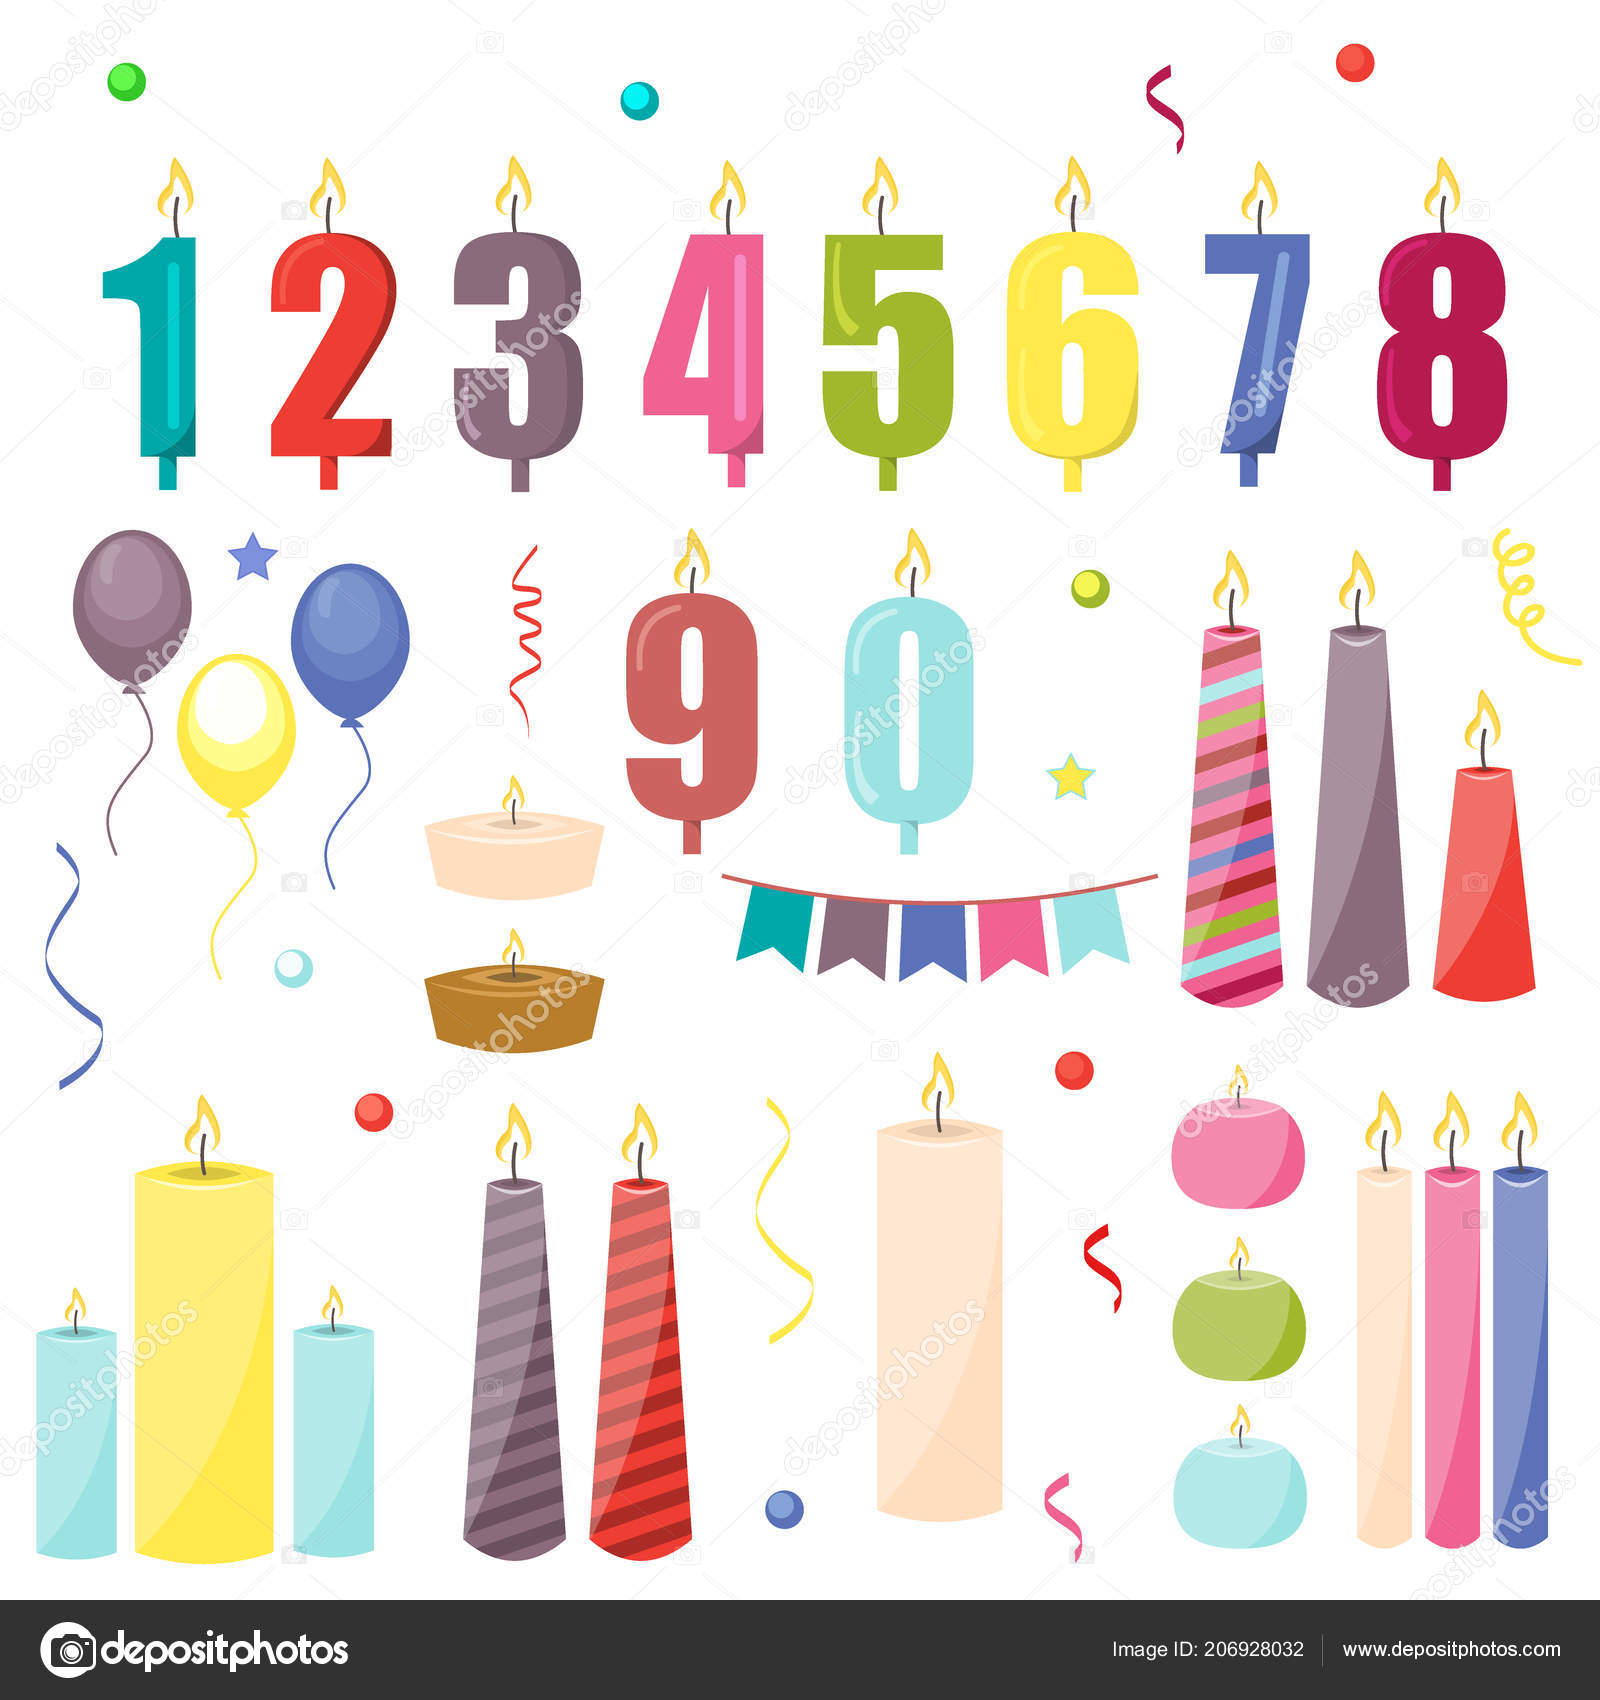 Birthday Cake Candles Celebration Decoration Anniversary Fire Greeting Holiday Gift Stock Vector